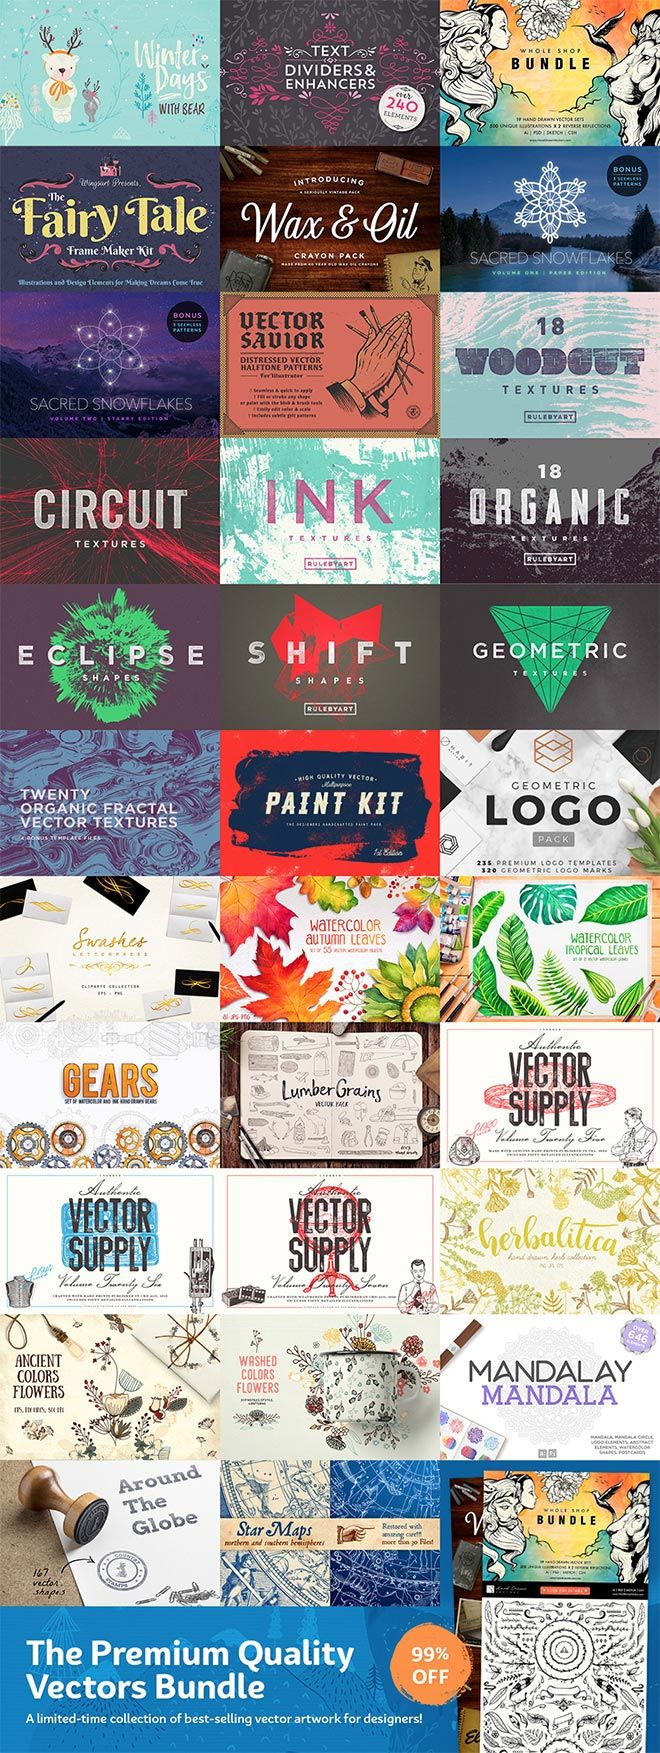 The rationale premium vector design assets are likely to value a lot is that a appreciable period of time has been put into crafting them to make sure theyre premium high quality. Artists and Illustrators spend hours portray and drawing every graphic by hand or sourcing them from uncommon supplies most of us simply do not have out there to us. Sometimes a vector graphics product is bought within the area of $20-$30 and supplies a great assortment of parts to make use of in your tasks however…